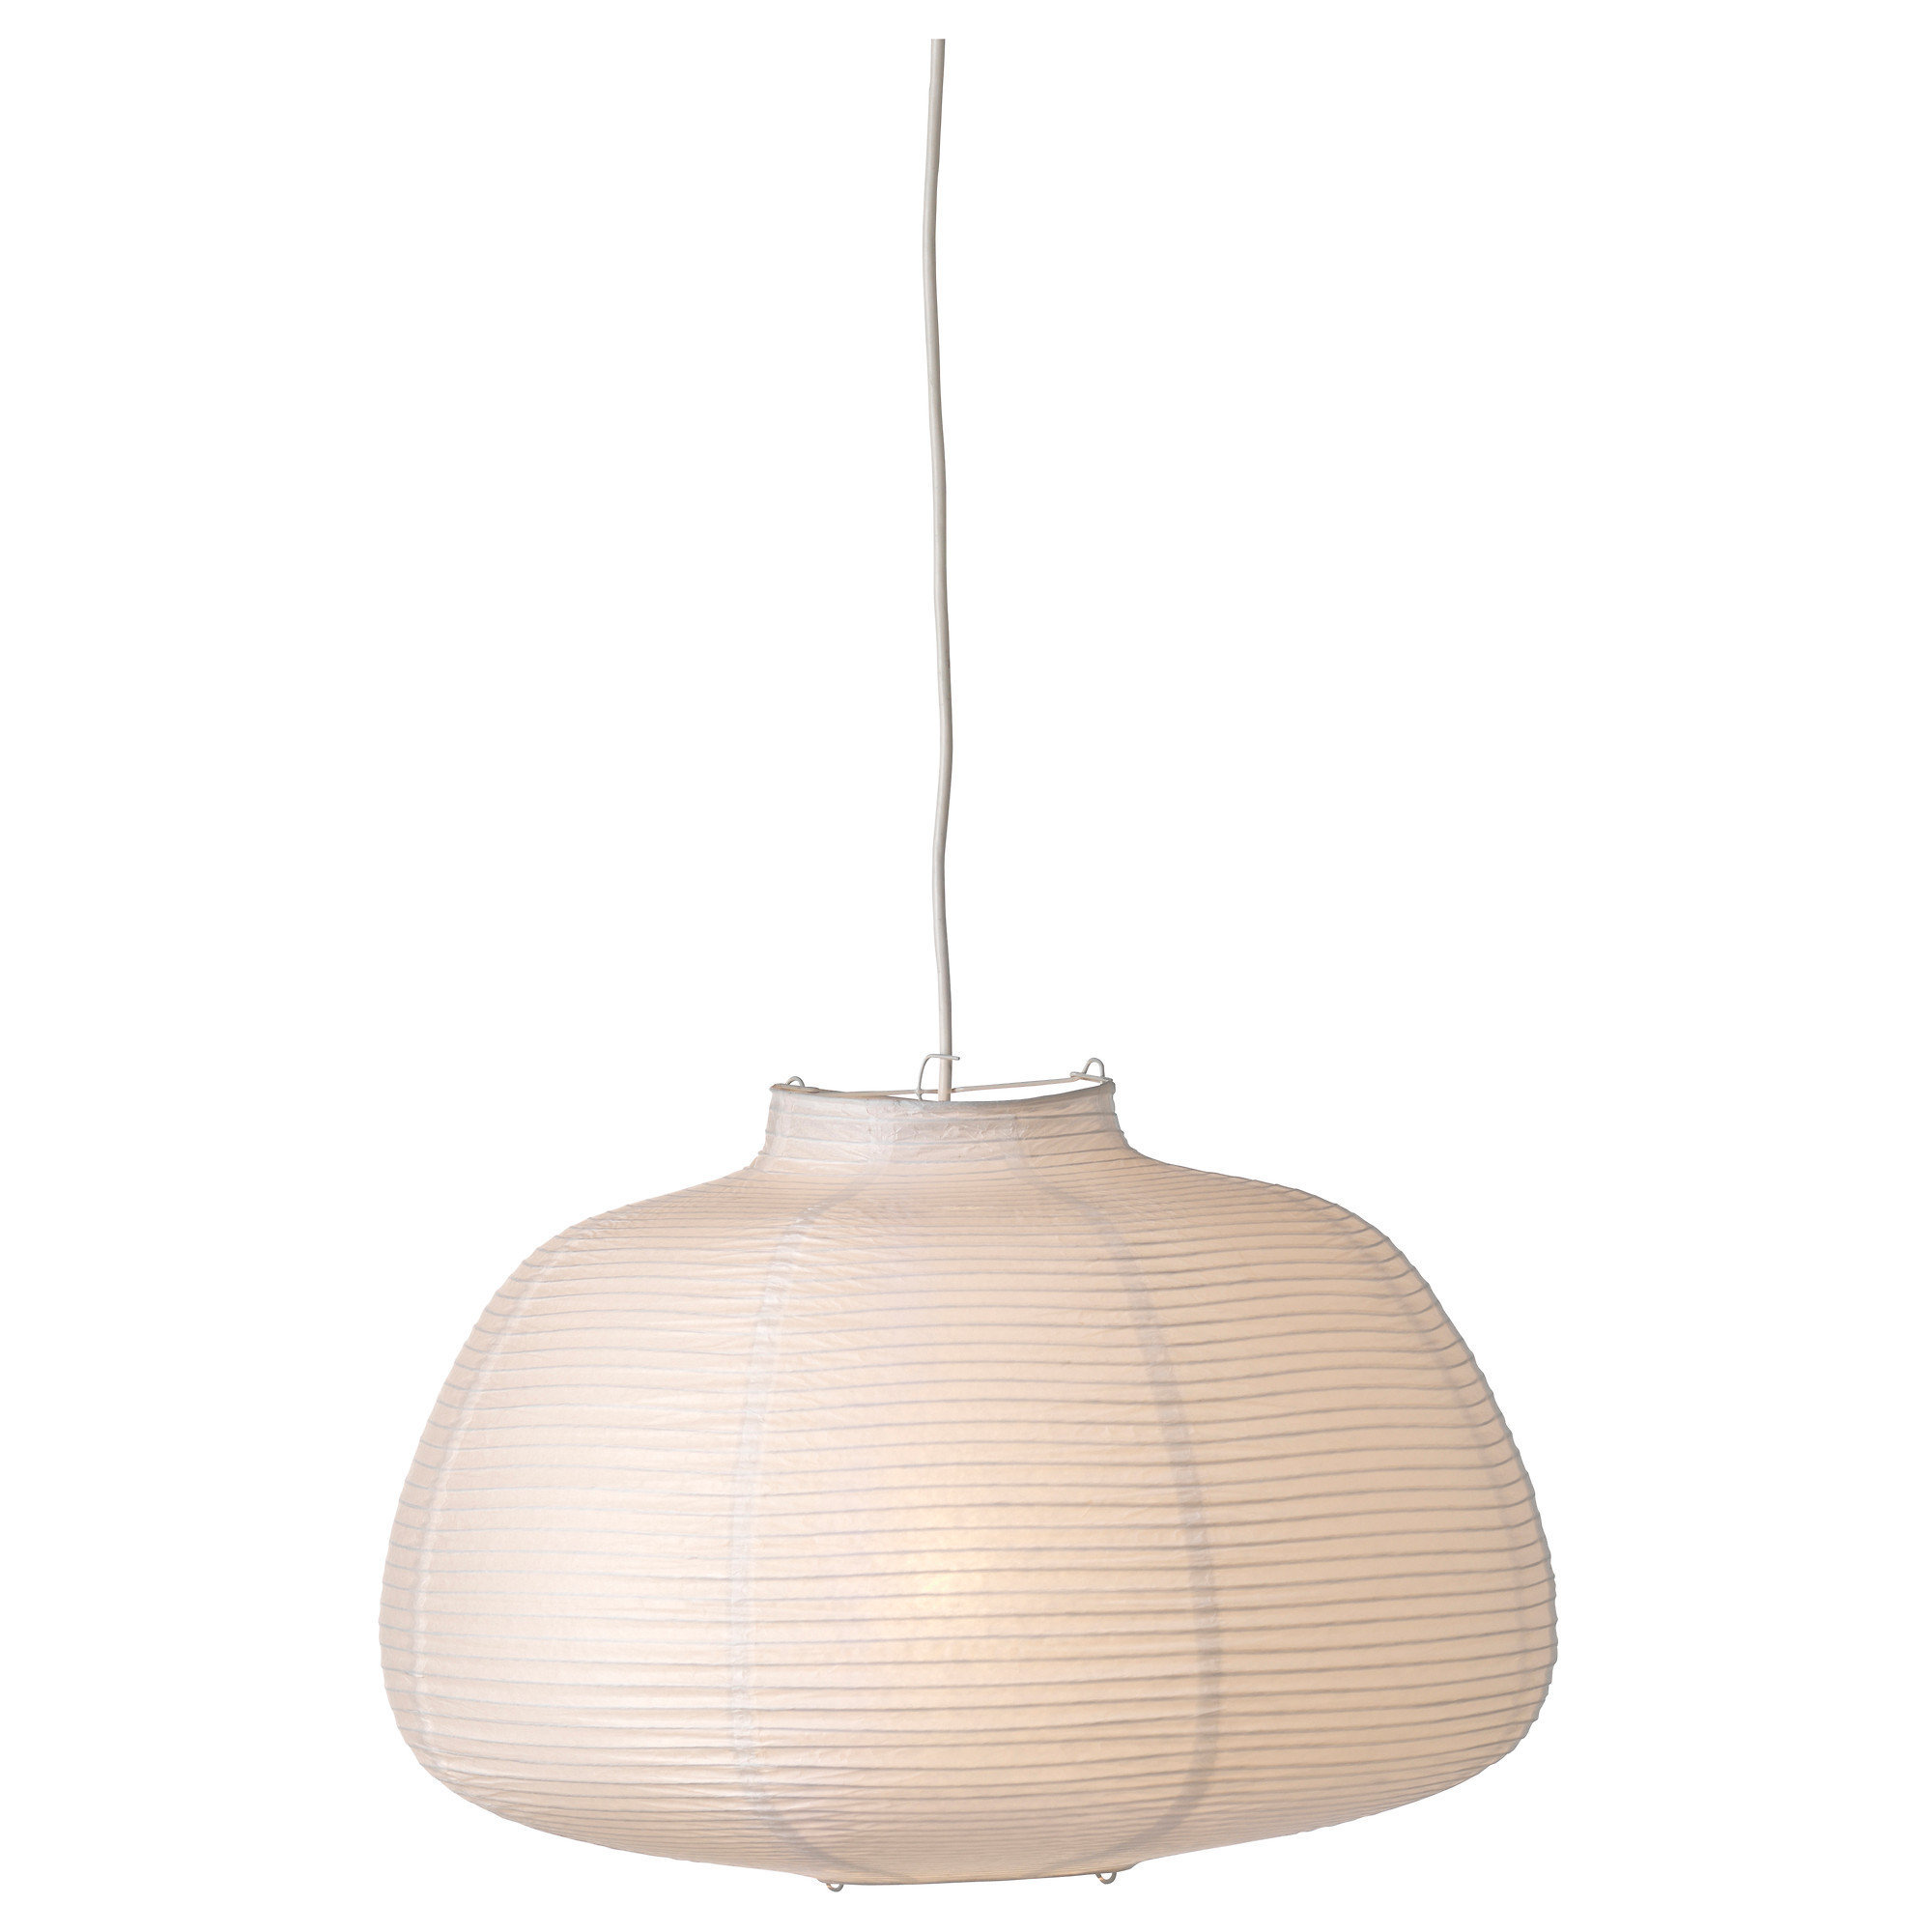 Pendant Lamp Shade Paper: VÄTE Pendant Lamp Shade - IKEA From IKEA